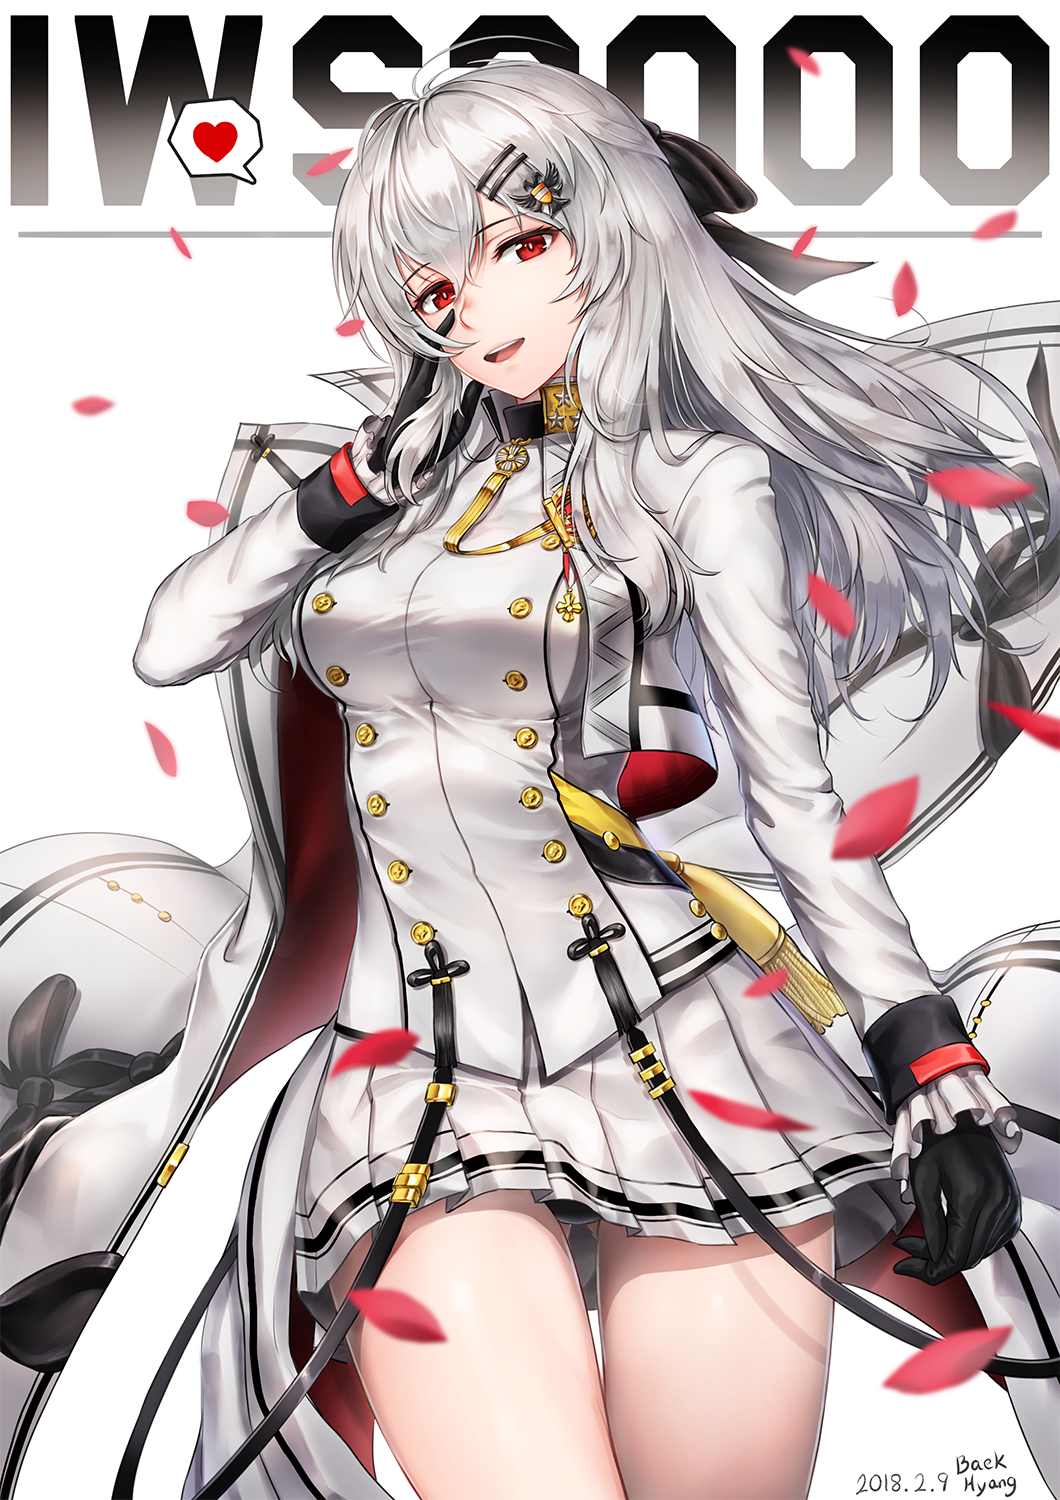 1girl arm_at_side artist_name baek_hyang bangs black_gloves black_panties blush bow breasts buttons character_name collared_jacket cowboy_shot cropped_jacket dated double-breasted eyebrows_visible_through_hair floating_hair frilled_sleeves frills fringe girls_frontline gloves gluteal_fold hair_between_eyes hair_ornament hair_ribbon hairclip half-closed_eyes hand_to_own_face heart highres iws-2000_(girls_frontline) large_breasts legs_crossed long_hair long_sleeves looking_at_viewer medal military military_uniform open_mouth panties pantyshot pantyshot_(standing) petals pleated_skirt red_eyes ribbon shirt sidelocks silver_hair simple_background skirt smile solo standing strap tassel thighs underwear uniform watson_cross weapon white_background wind wind_lift